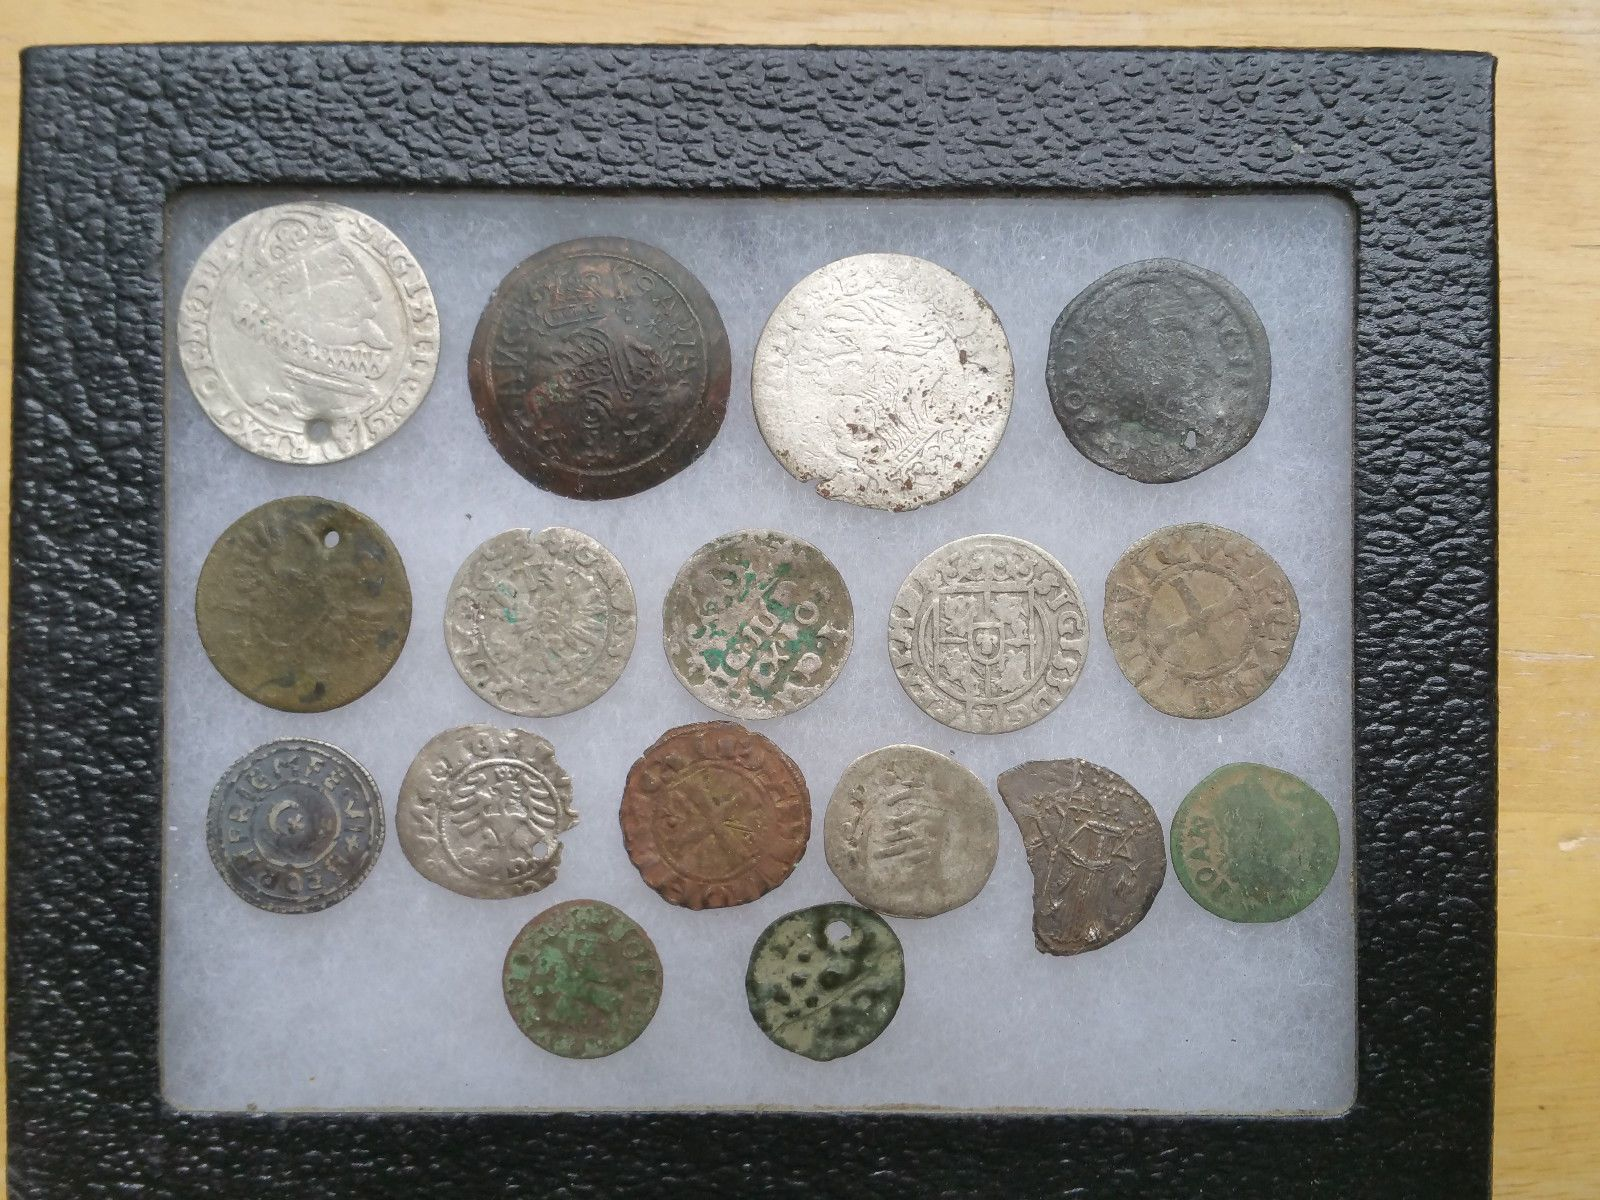 MIXED LOT OF HAMMERED COINS Price : $89.77 Ends on : 1 day